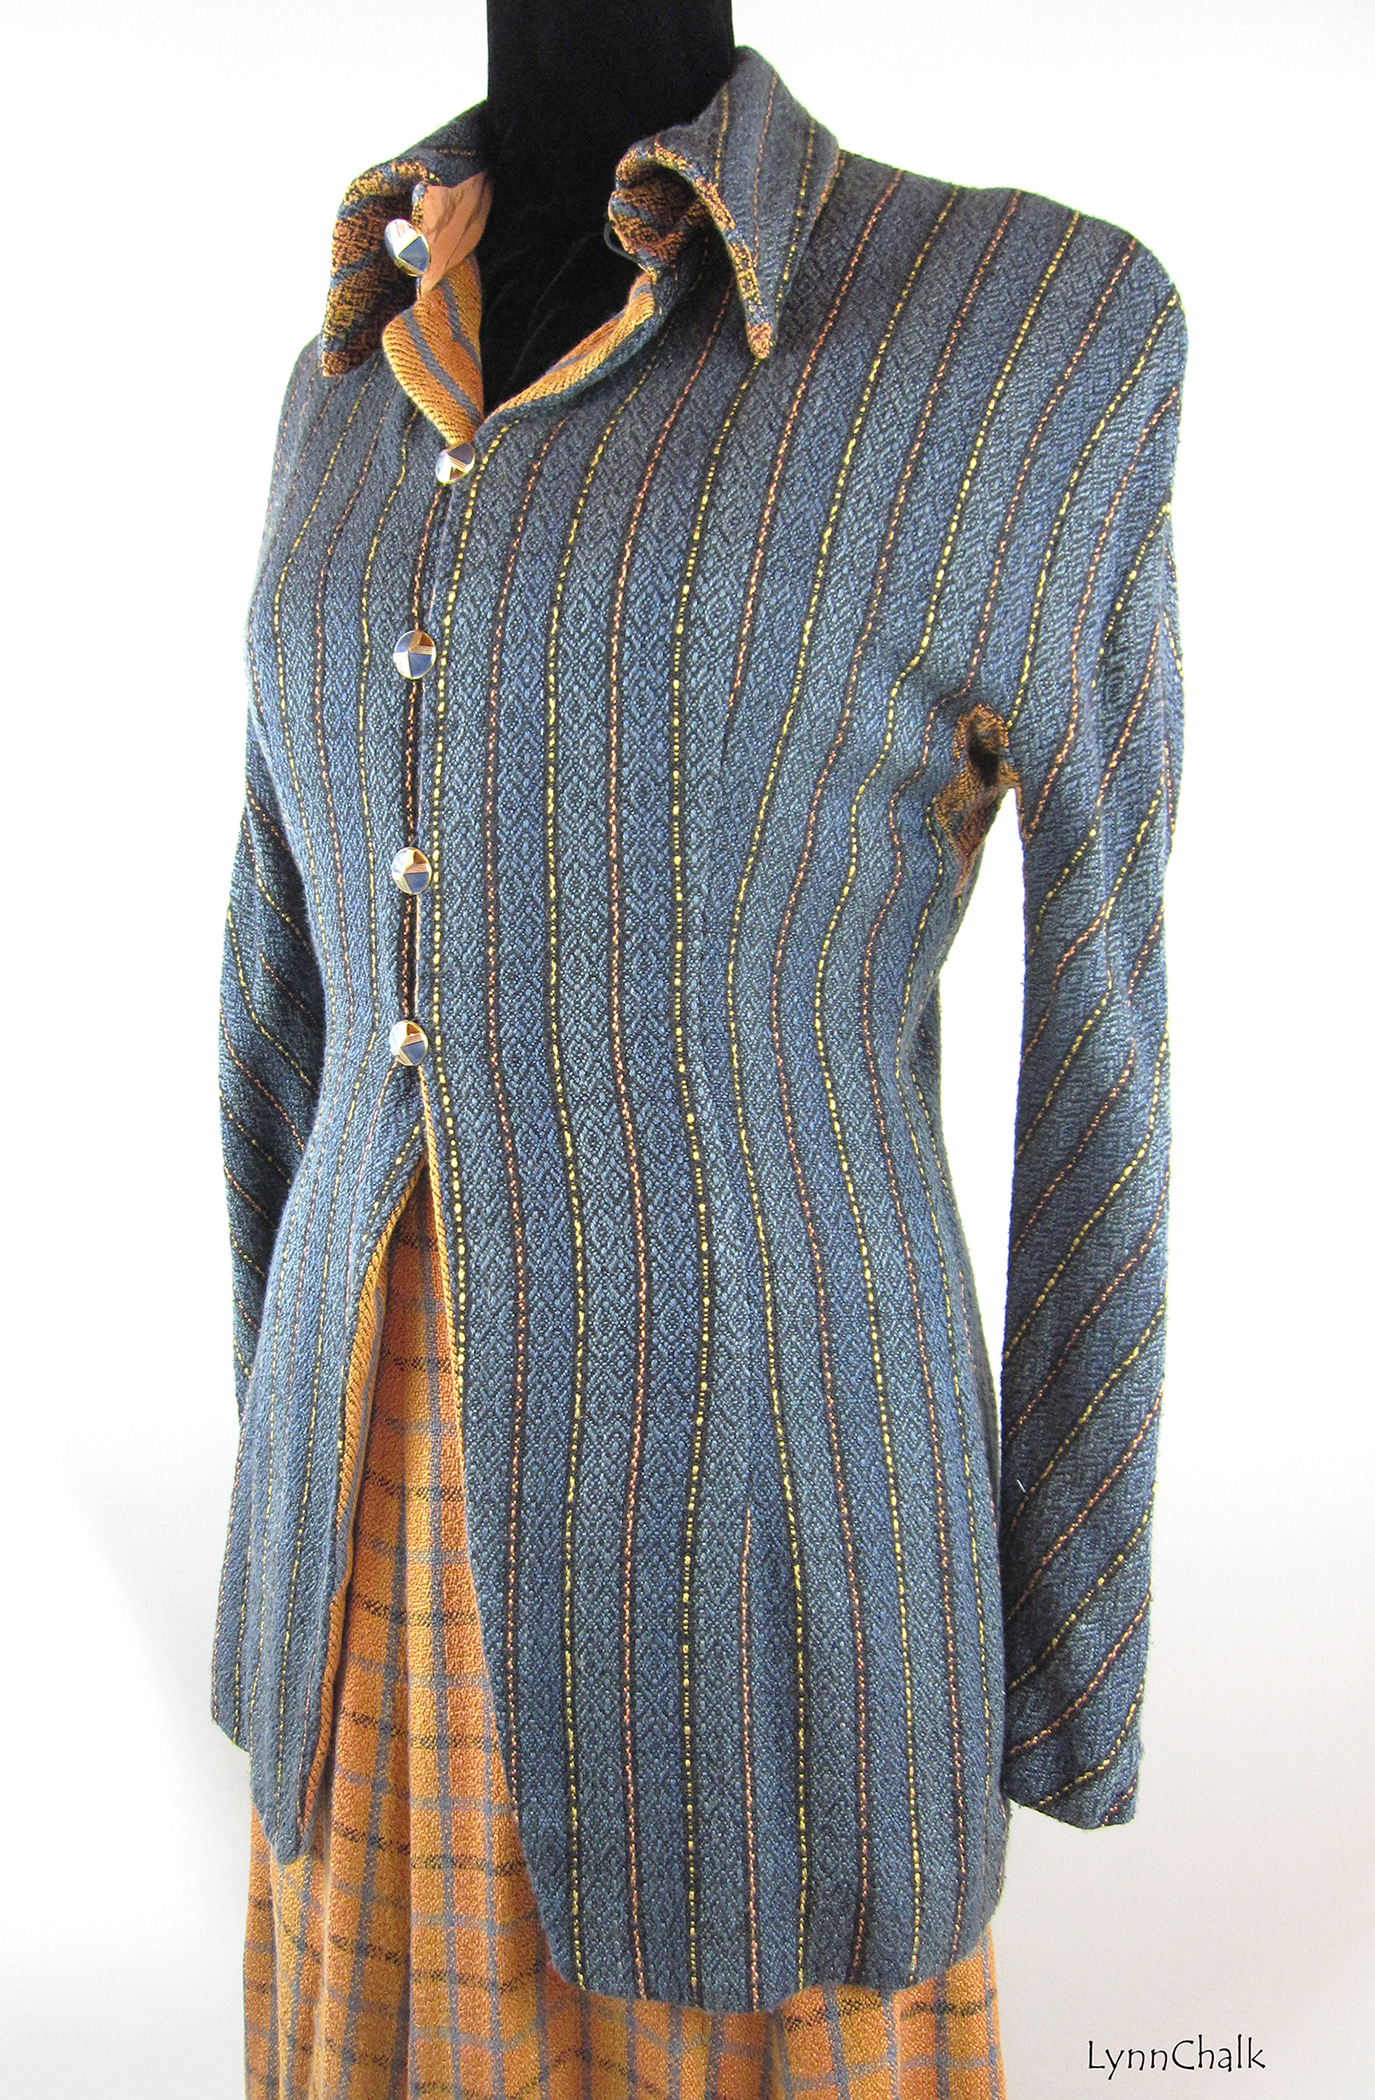 handwoven-jacket-double-breasted-blue-silk-rayon-chenille-resize.jpg